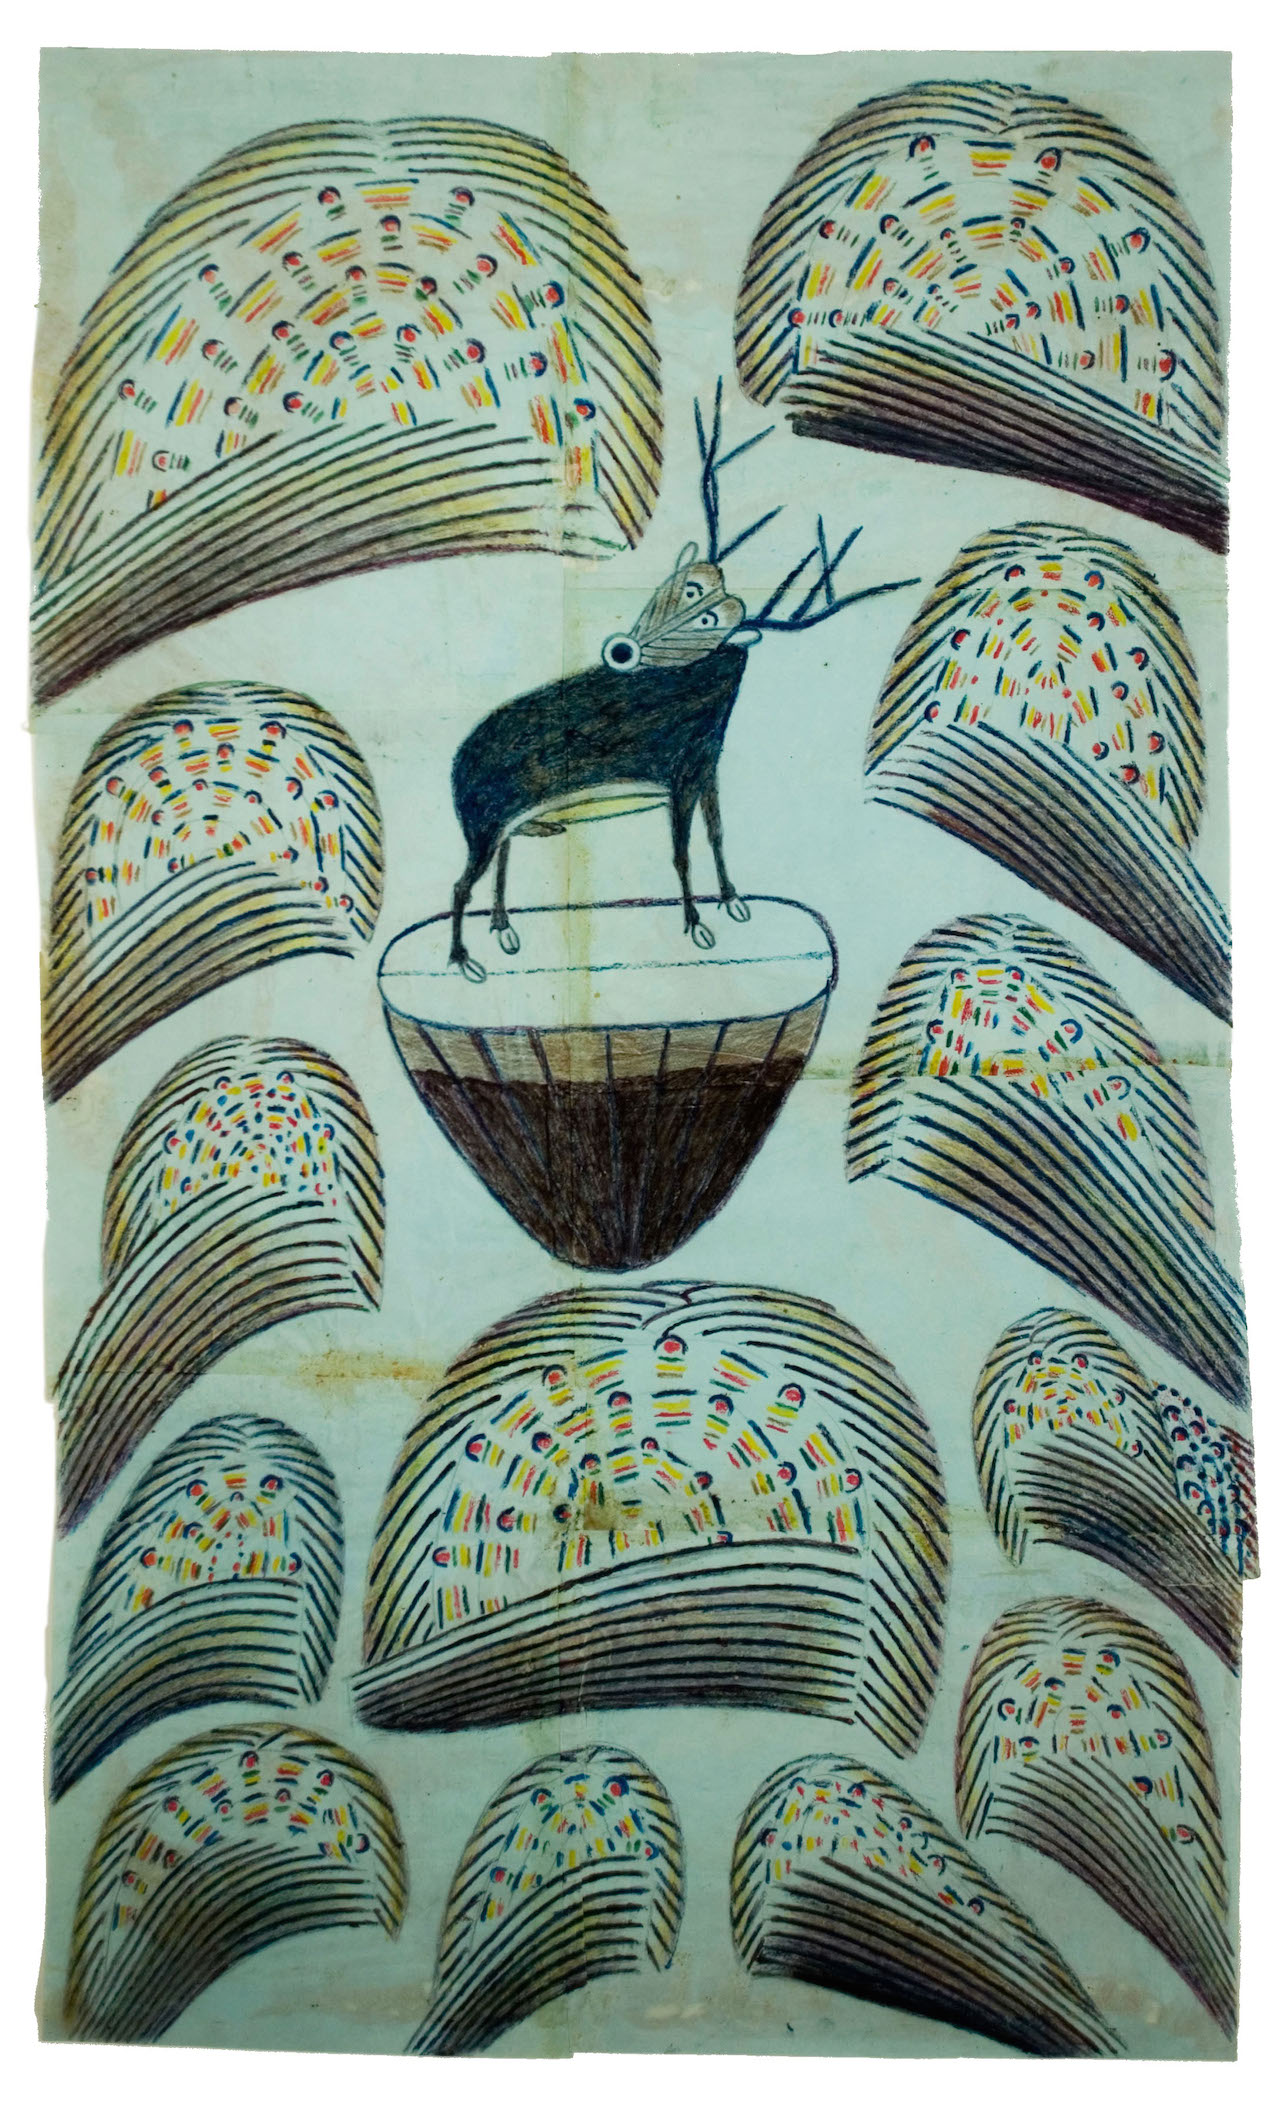 Untitled (Stag on Mound with Fireworks) c. 1952-53 Graphite, tempera and crayon on paper 32 x 19 1/2 in; 81.3 x 49.3 cm